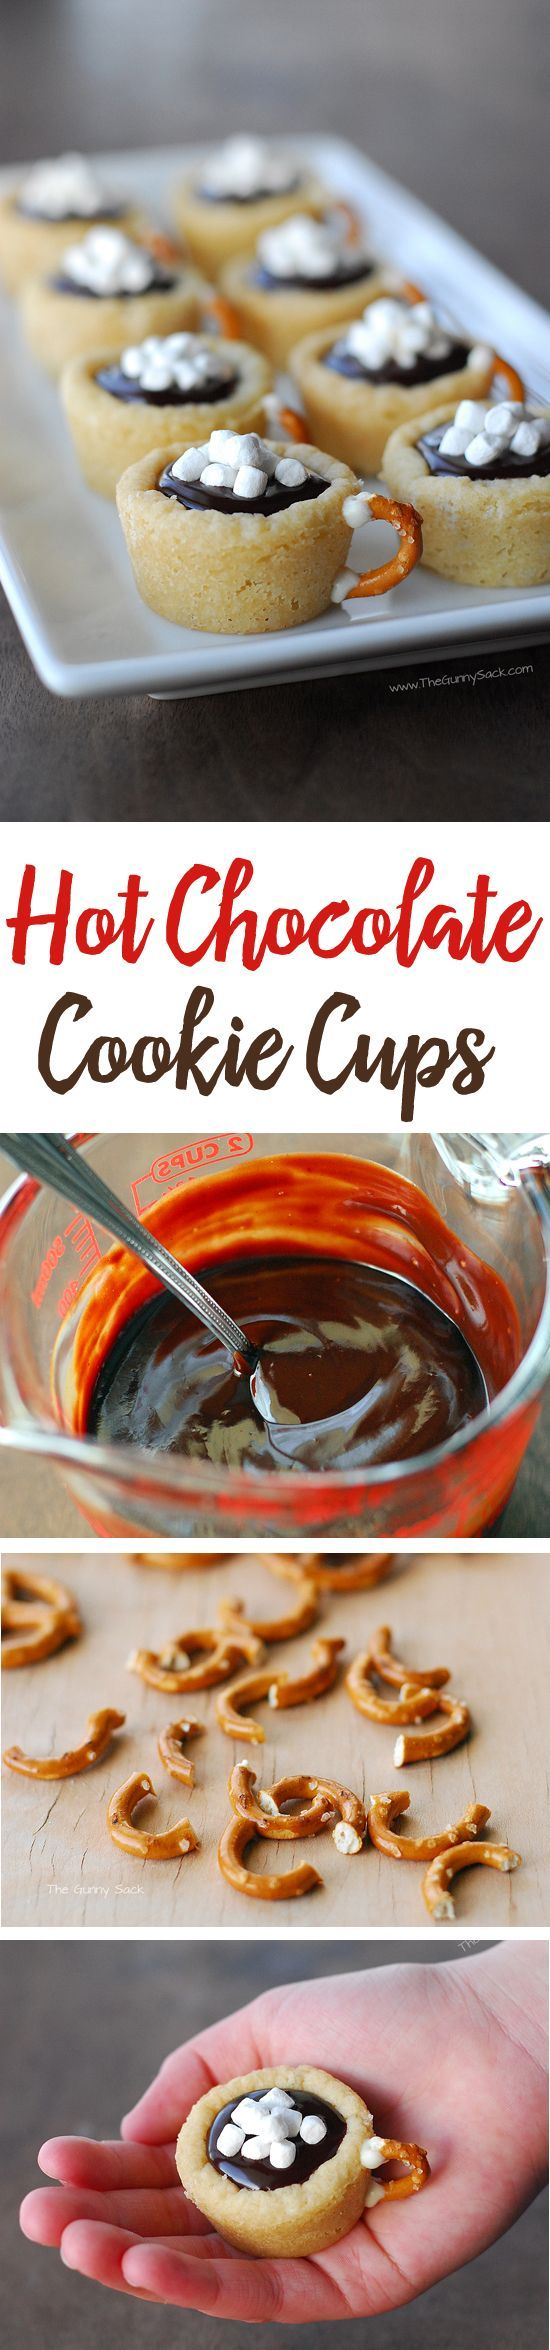 has always been a hot chocolate fan & is known to order hot chocolate in July! These look so cute and yummy, best of all I think it will be so fun to make them with Kylie!  This easy cookie recipe for Hot Chocolate Cookie Cups is made with sugar cookies. They're filled with chocolate ganache and have a pretzel handle!